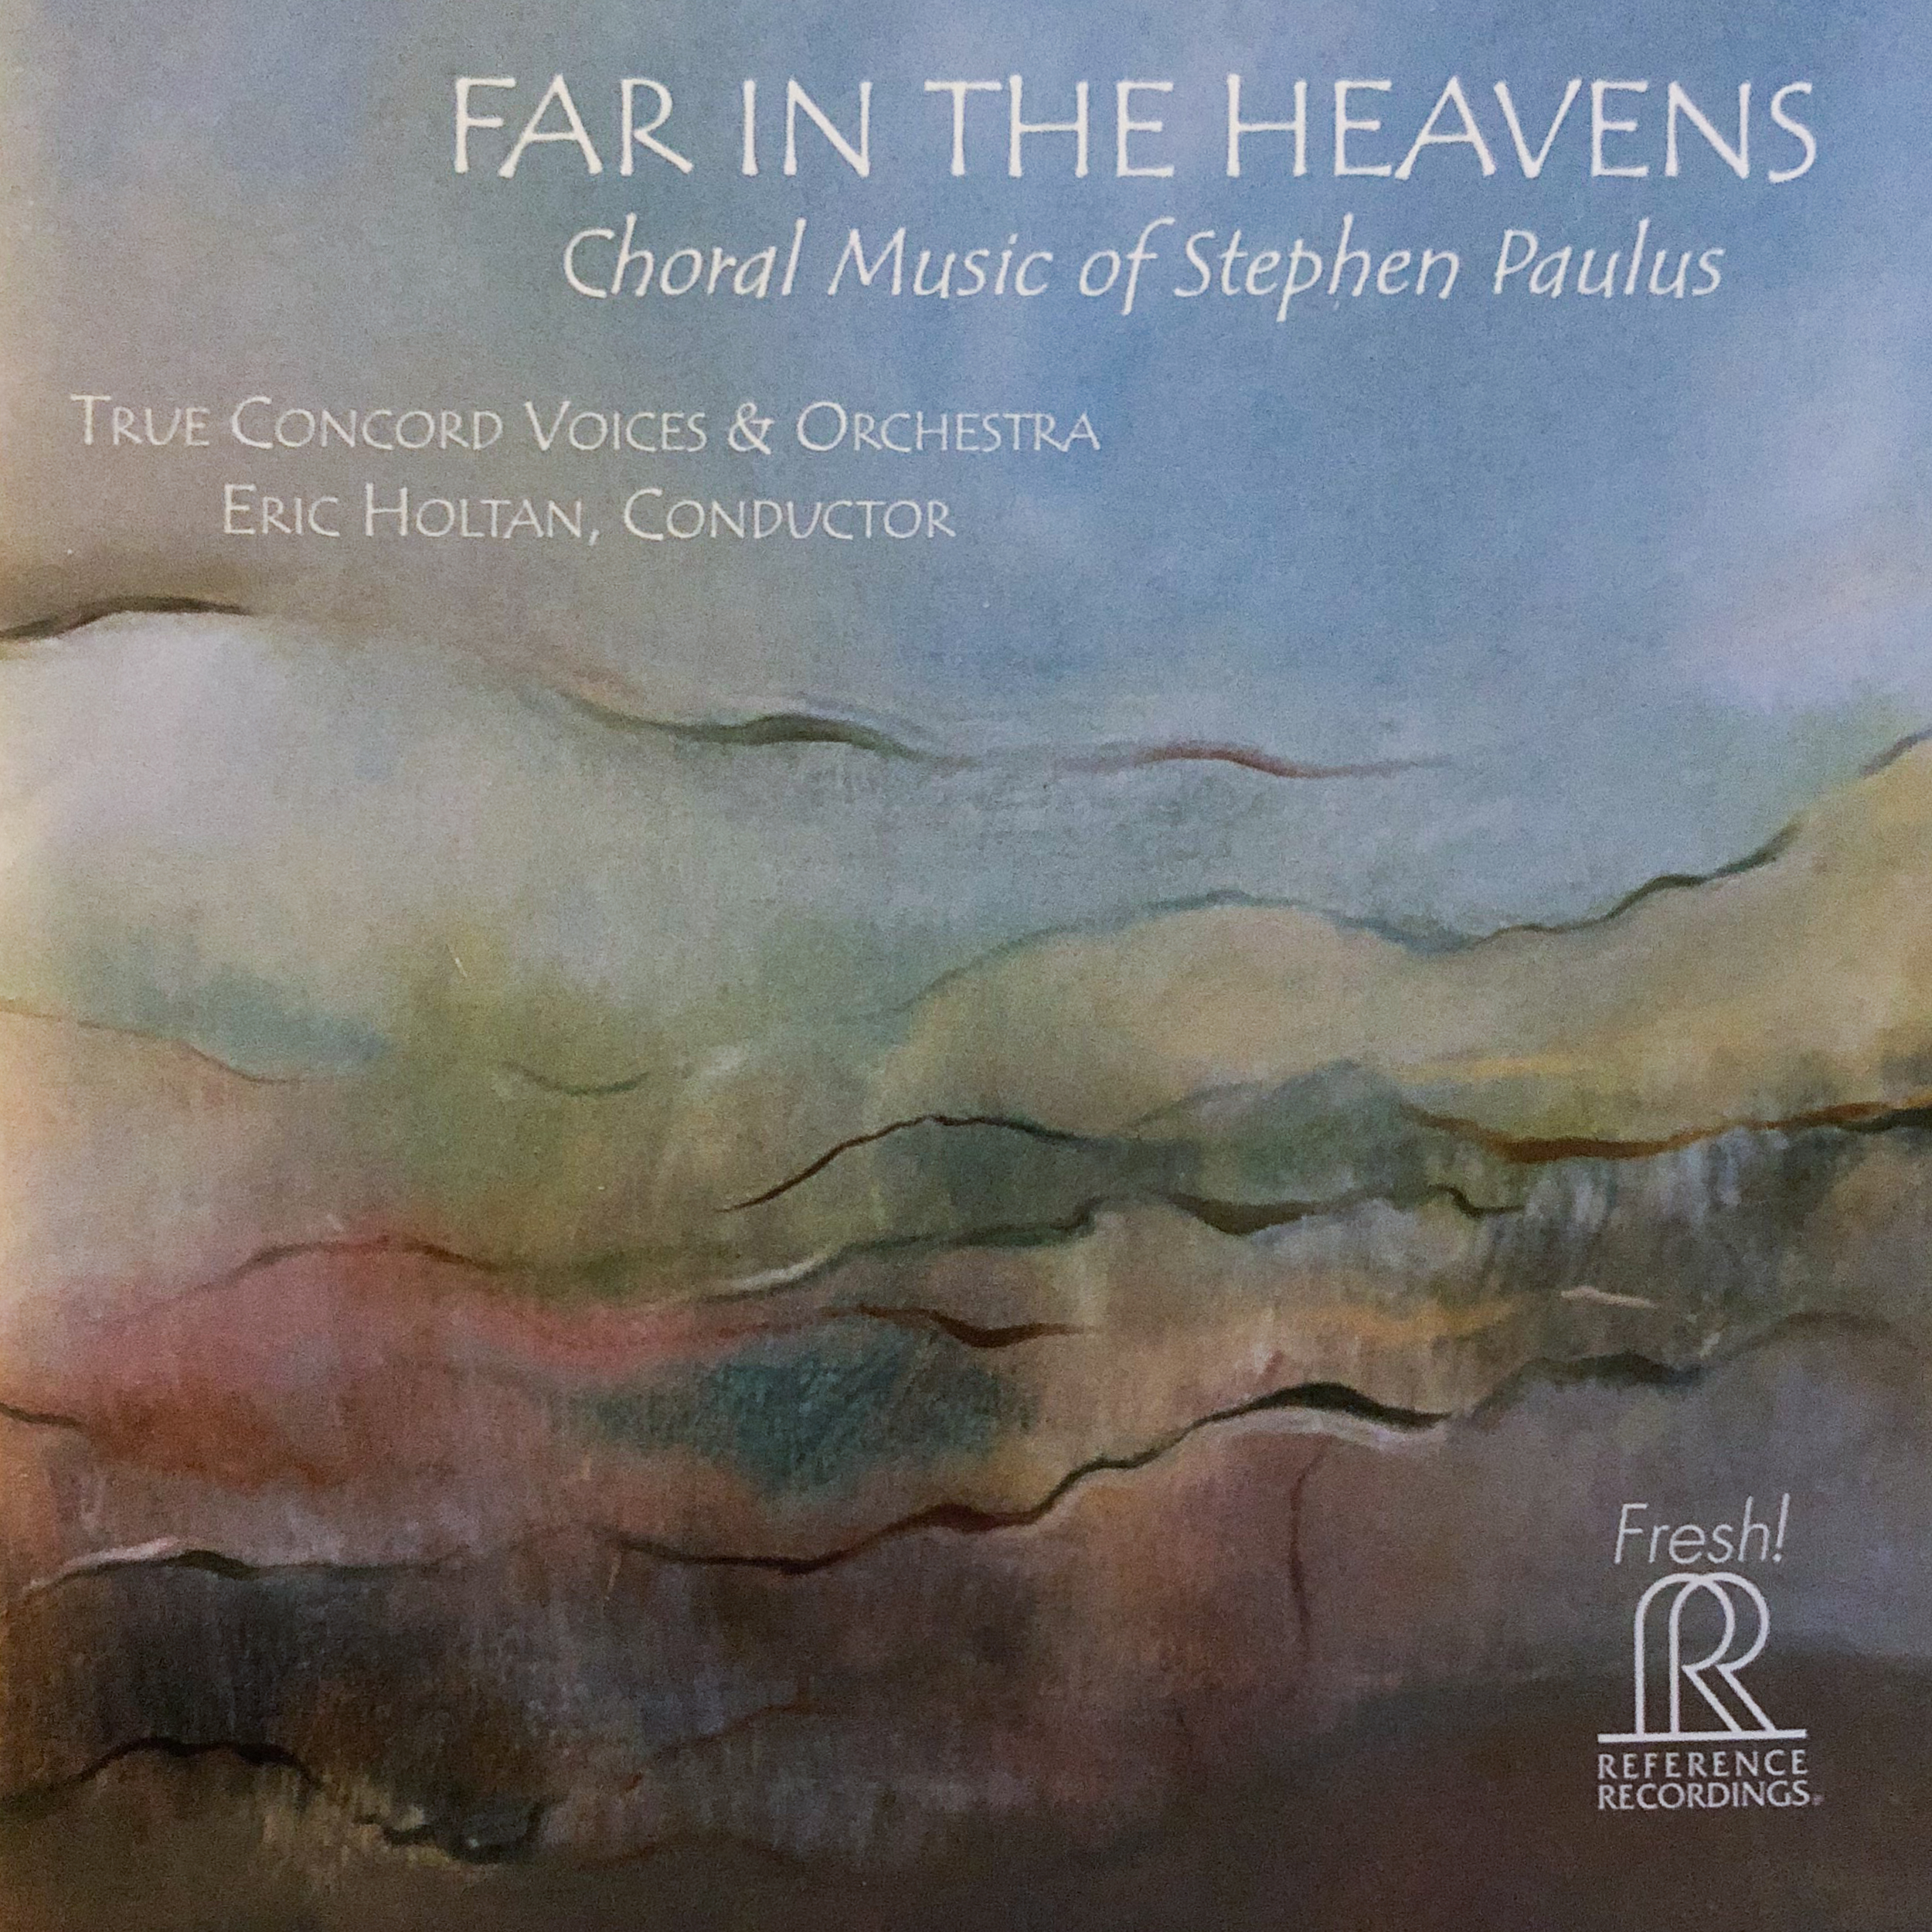 Far In The Heavens: Choral Music of Stephen Paulus